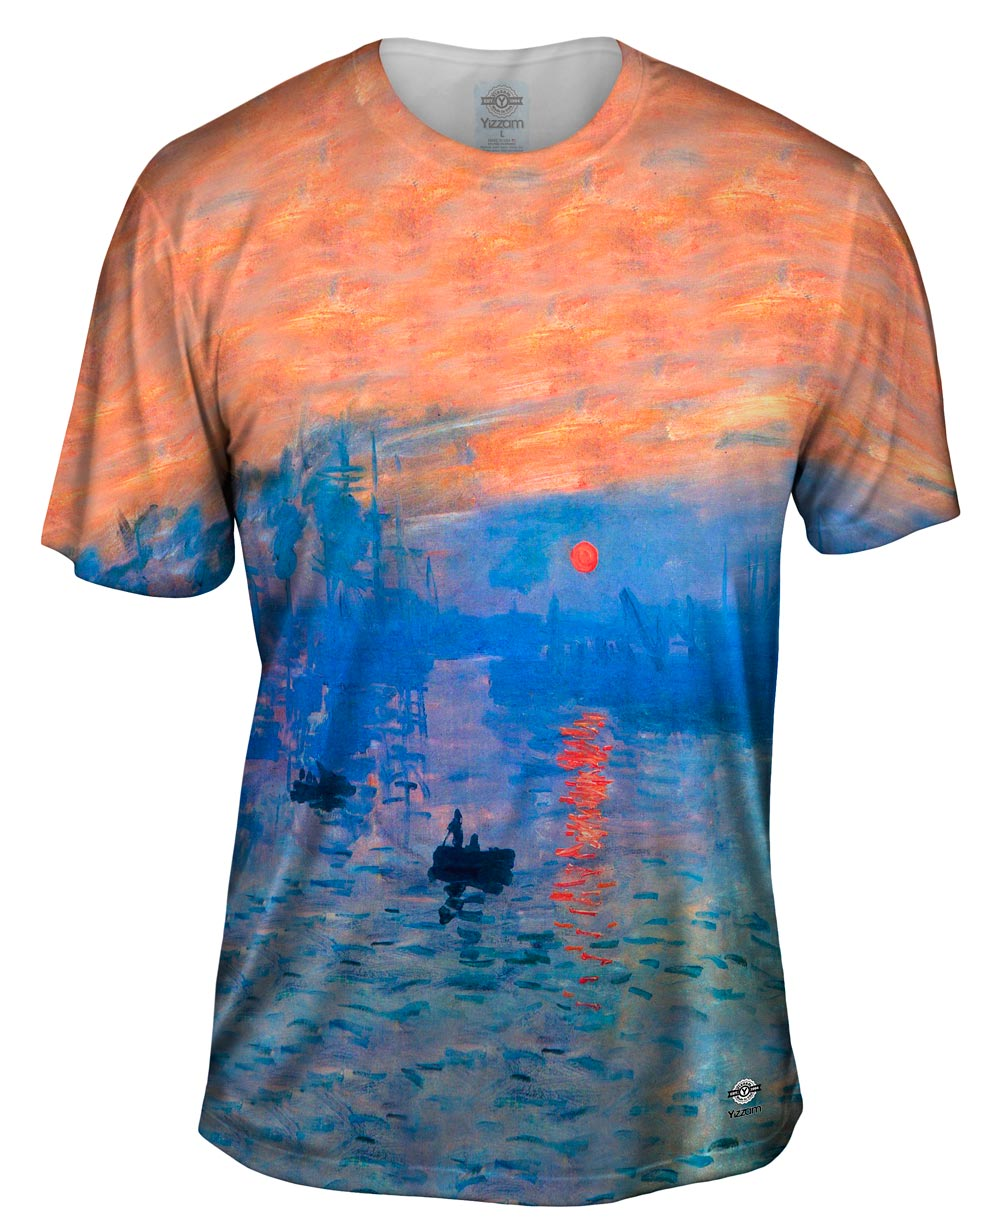 yizzam monet impression sunrise new men unisex tee shirt ebay. Black Bedroom Furniture Sets. Home Design Ideas